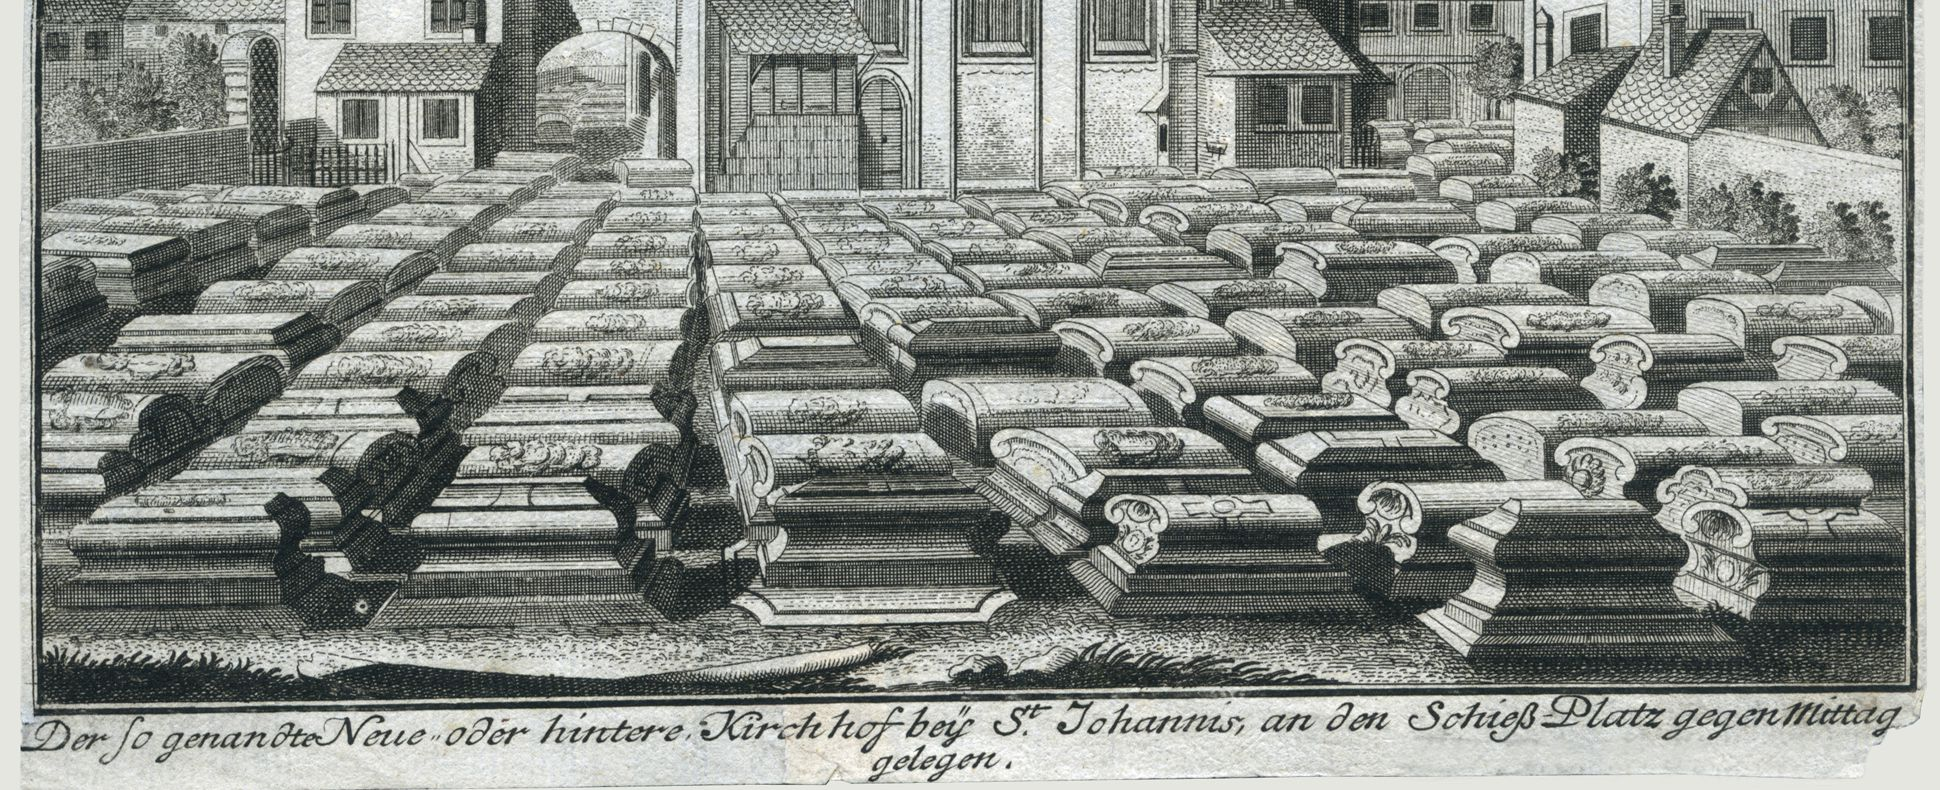 """The so-called new or back churchyard of St. Johannis…"" Burial ground and image caption"